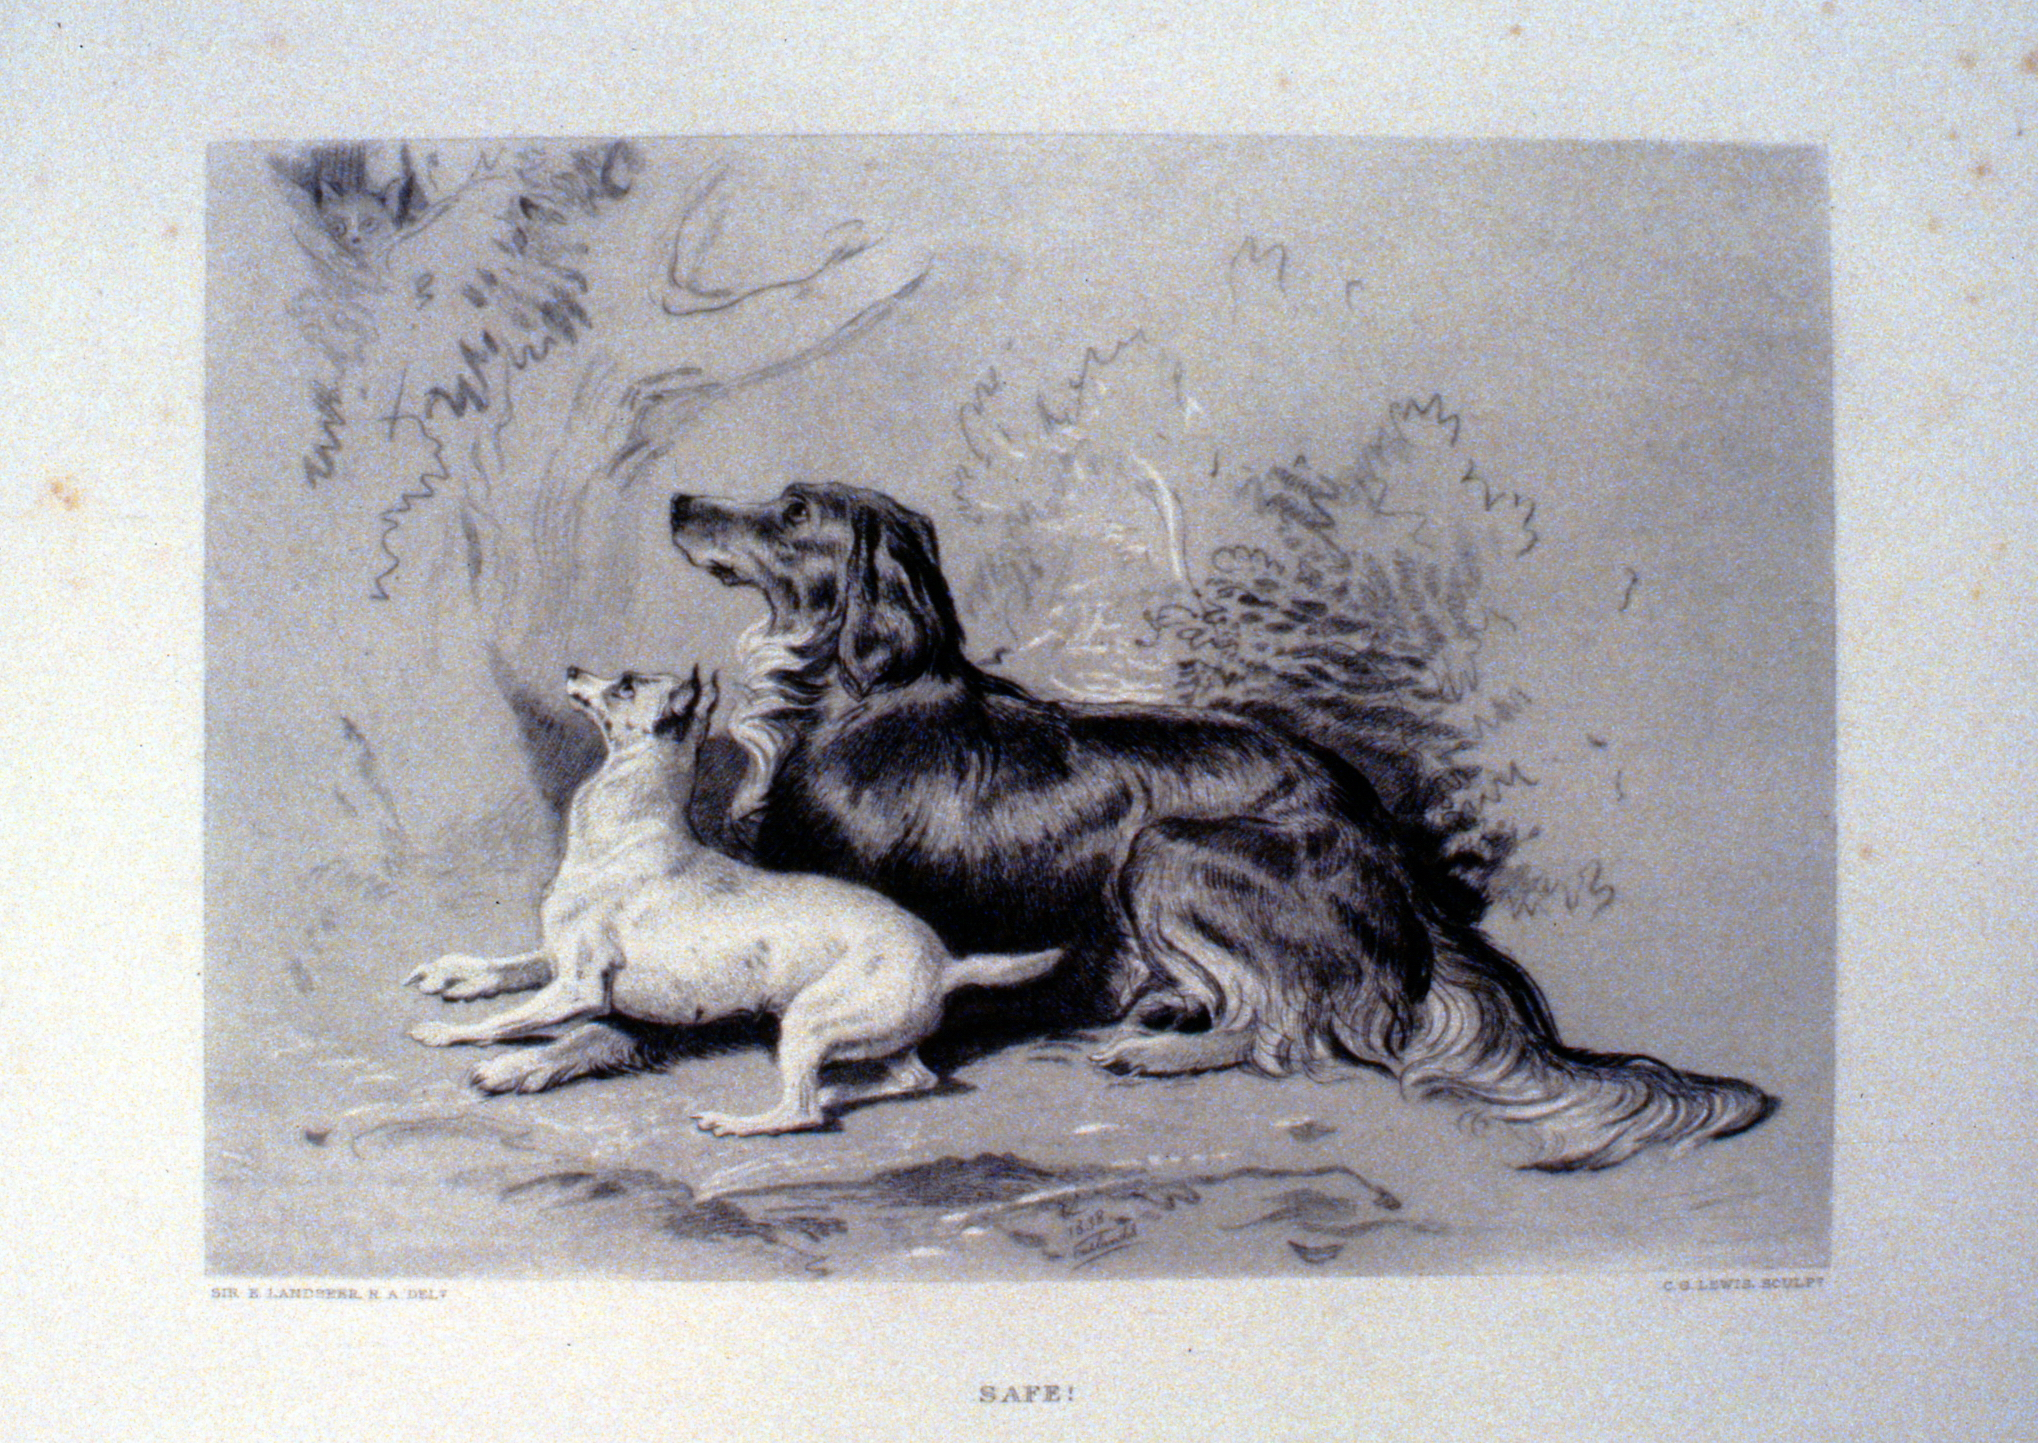 Safe! , c. late 19th Century, Charles G. Lewis, steel engraving, 17.3 cm x 25 cm, 1996.08.43, gift of Yvonne Adams